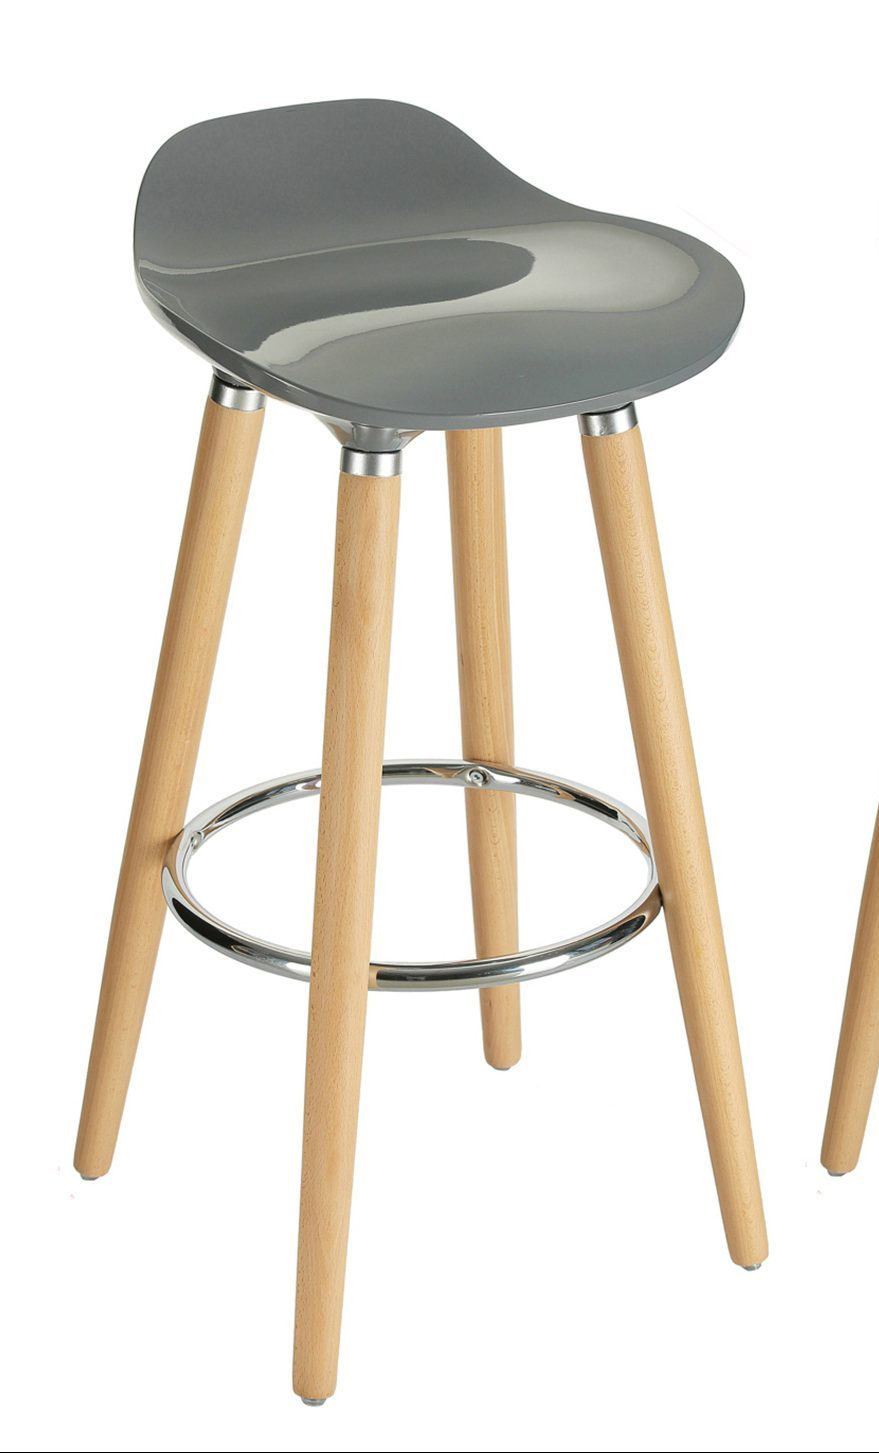 Orolay Grey Kitchen Breakfast Bar Stool Abs Plastic Seat Chrome Footrest Wooden Legs